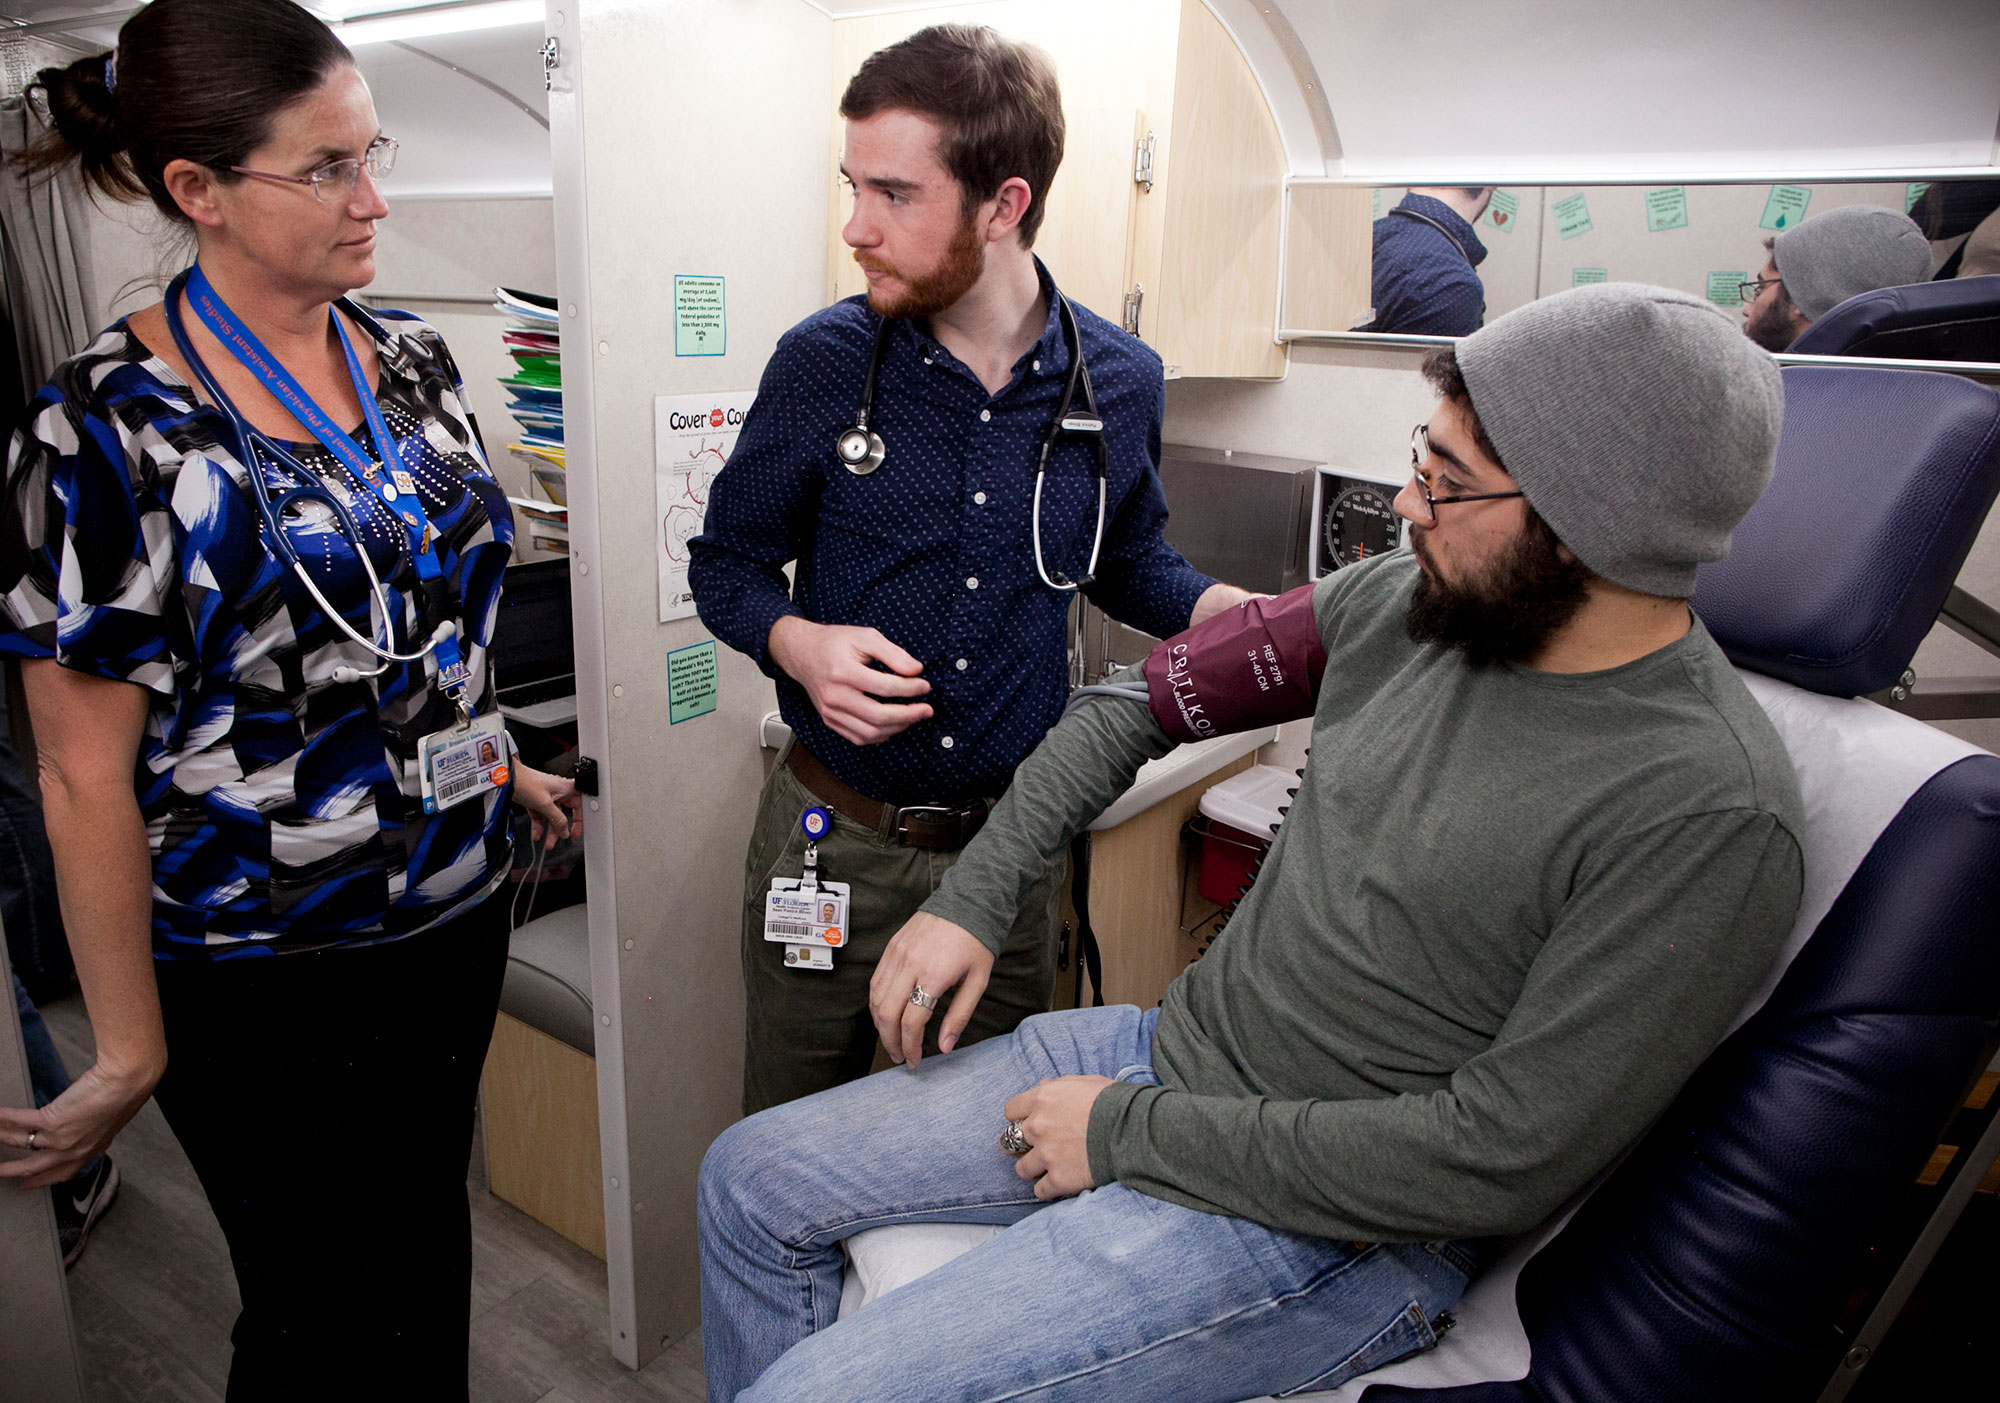 Patrick Bliven (center), aided by a UF attending physician (left), examines a patient in the privacy of UF's Mobile Outreach Clinic.